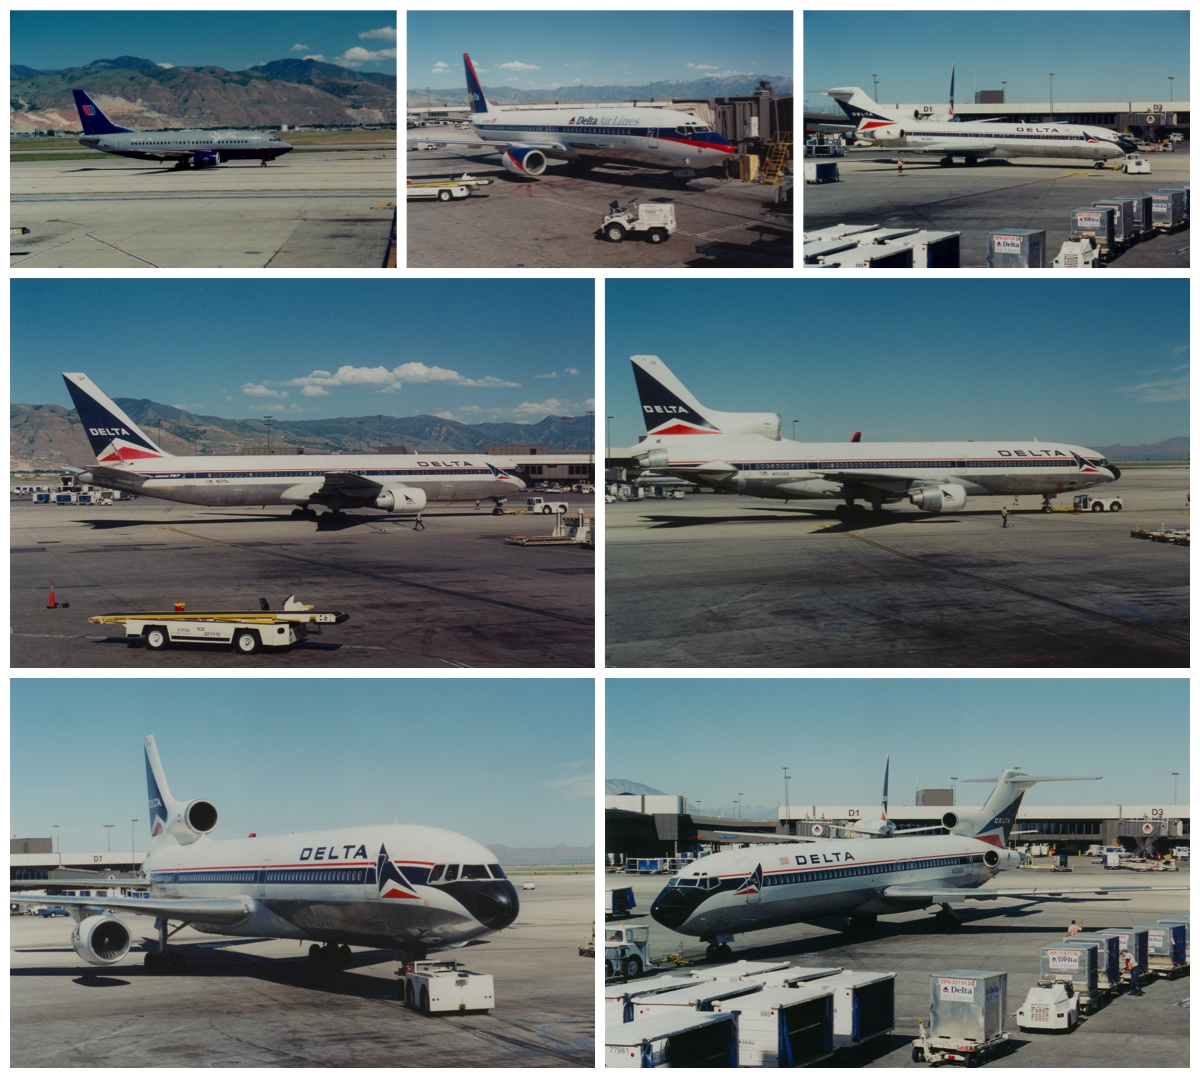 delta airlines aircraft at SLC